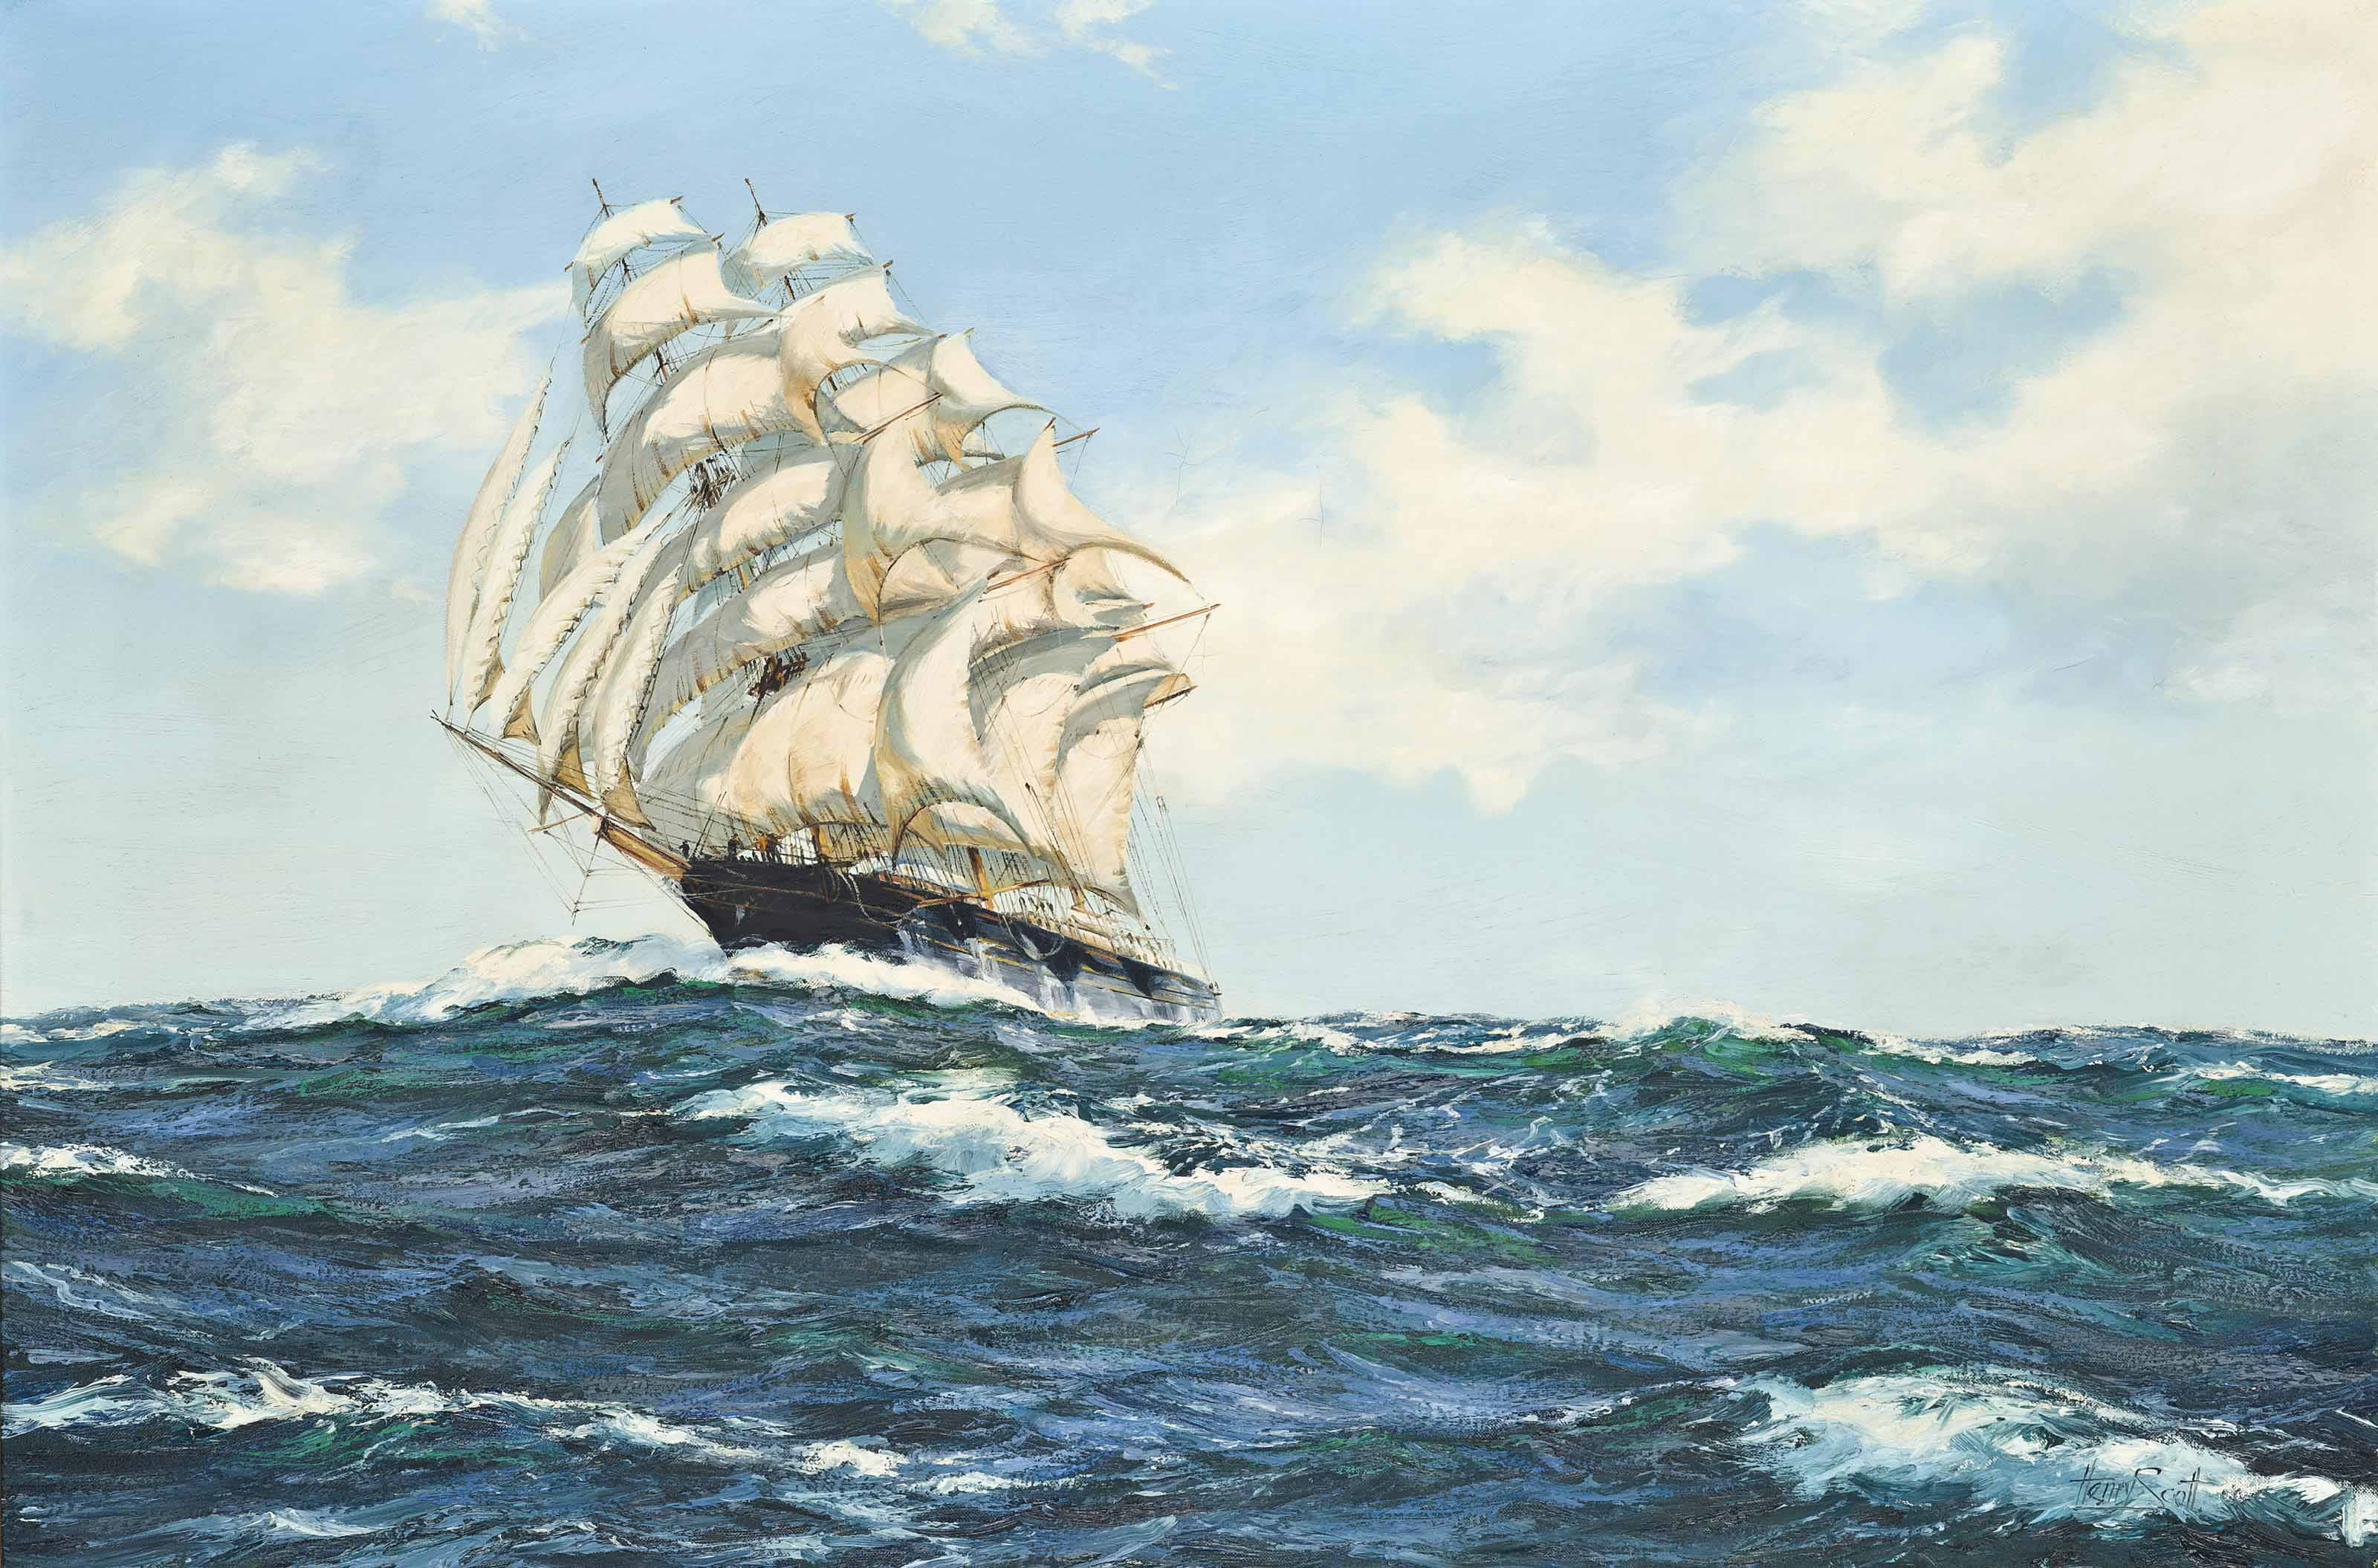 'Forty days out from Melbourne': The American clipper Empress of the Seas